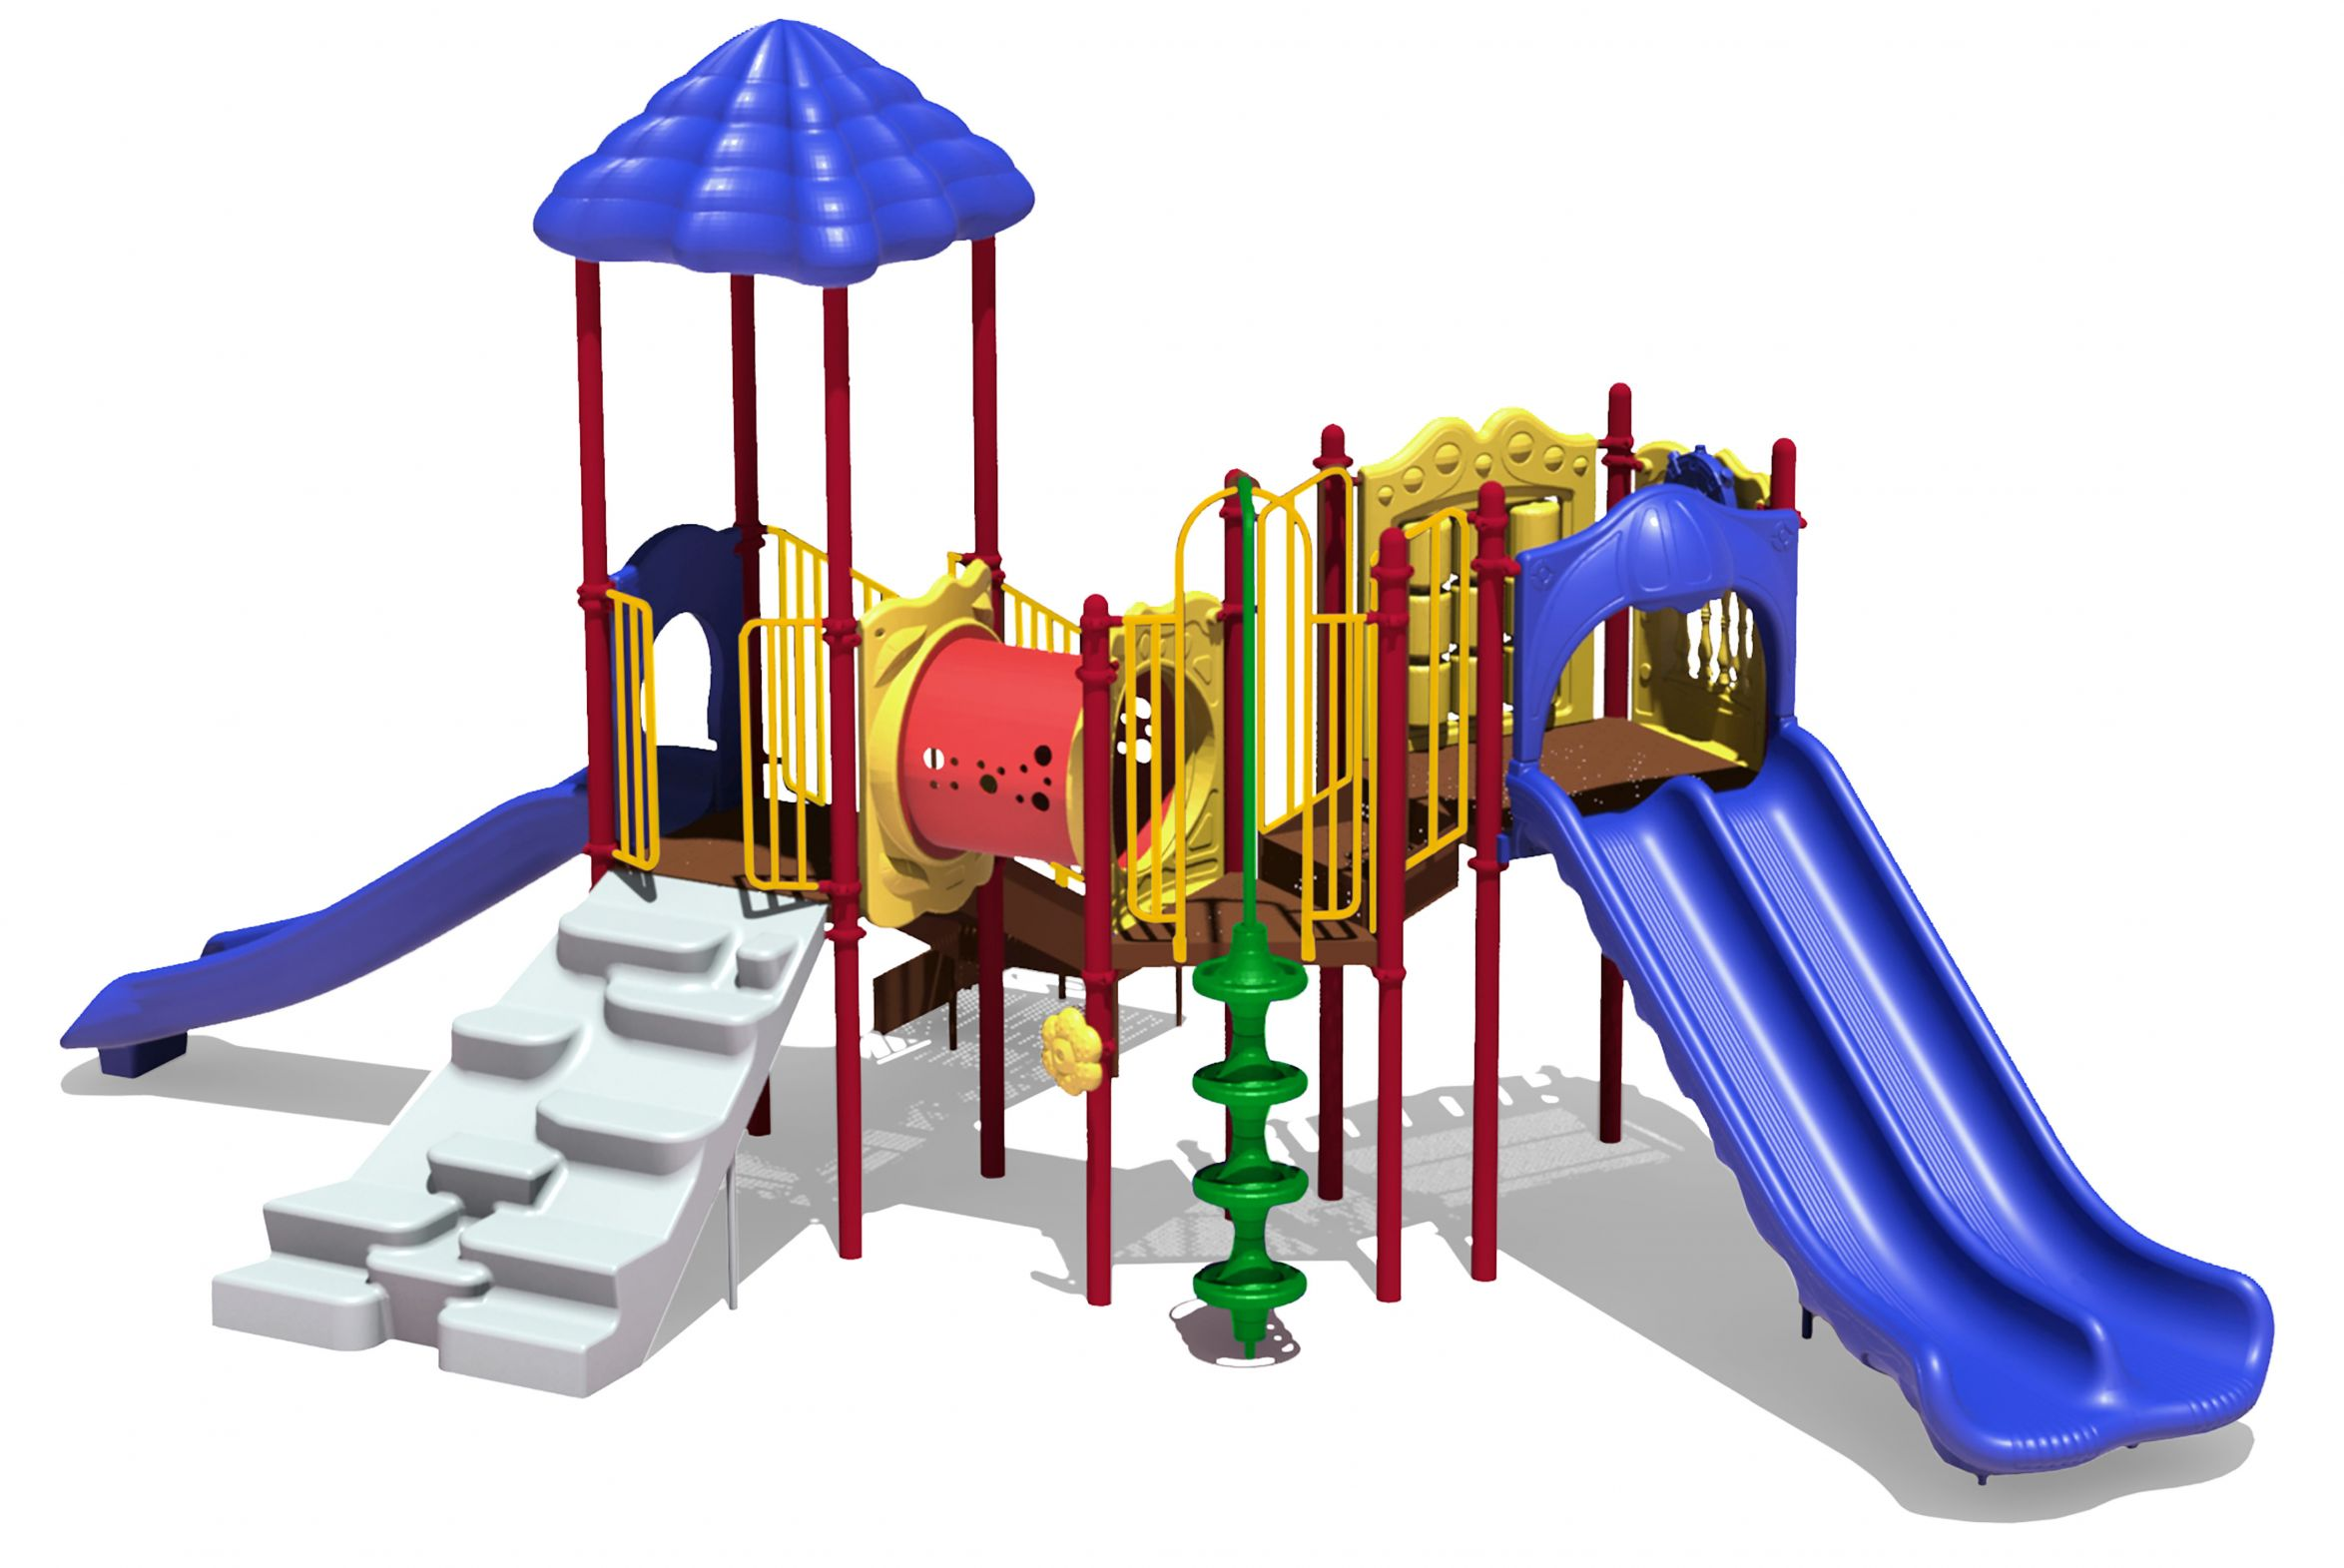 Toys Swings & Slides - Uplay-019-p - Falcon's Roost (playful) UPLAY-019-P